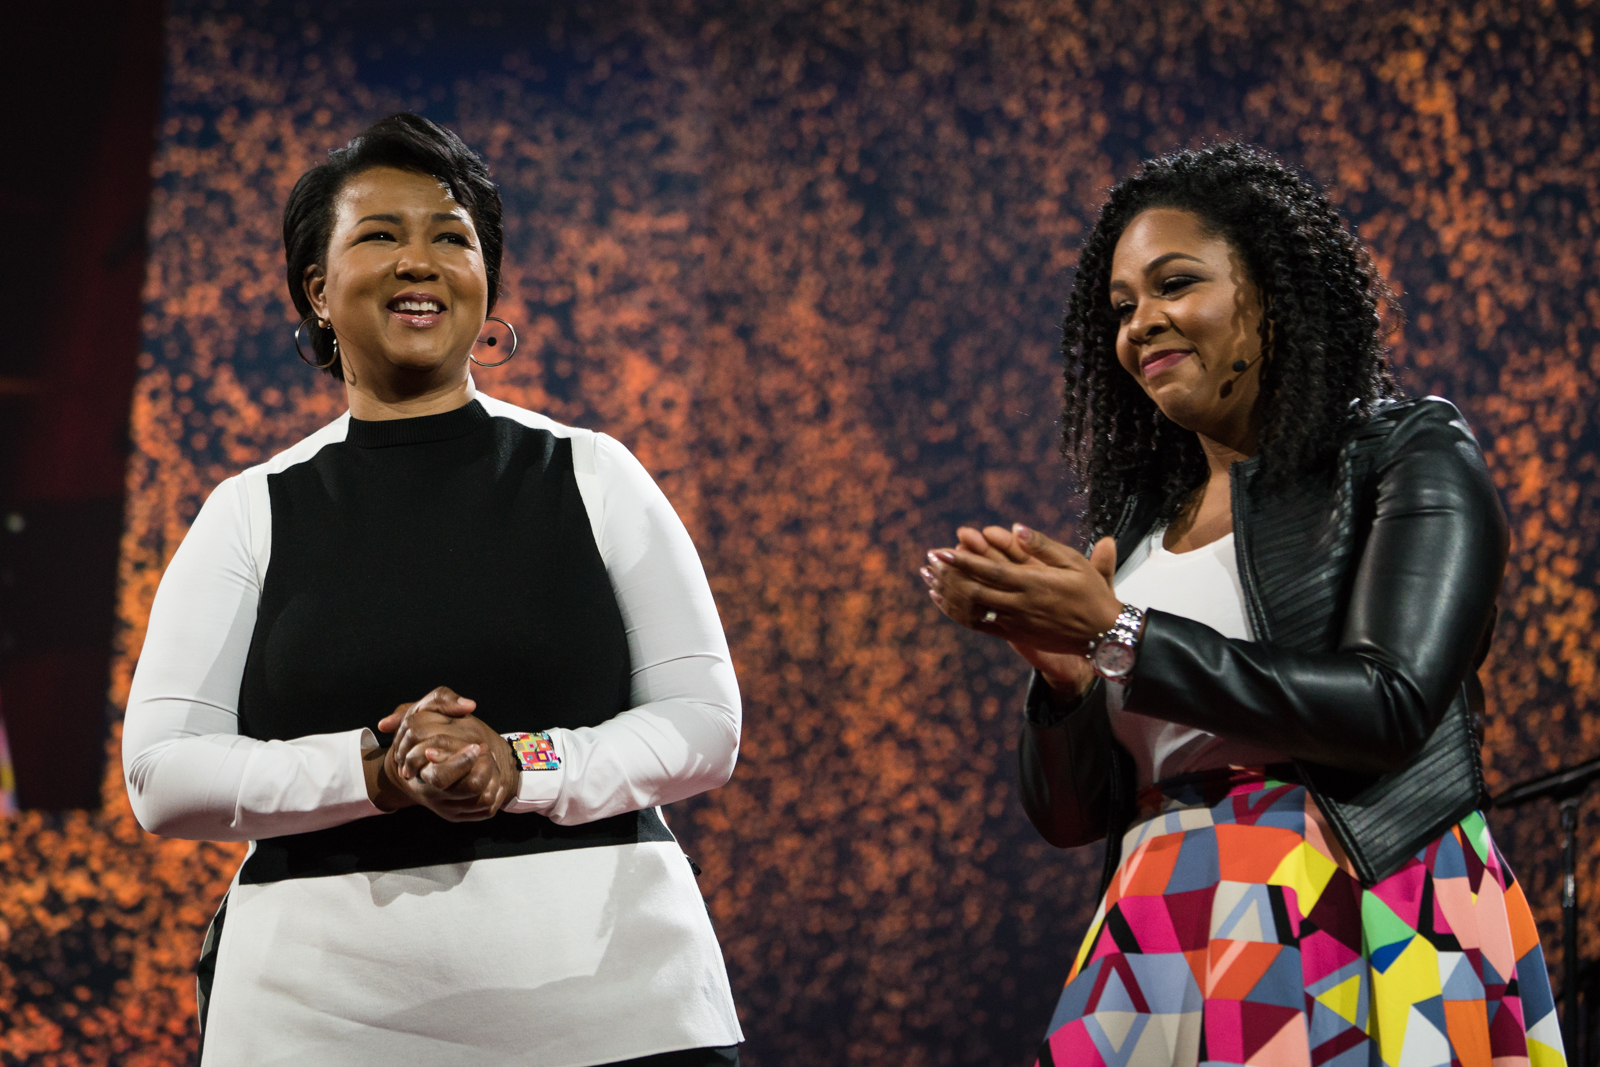 Mae Jemison speaks at TED2016 - Dream, February 15-19, 2016, Vancouver Convention Center, Vancouver, Canada. Photo: Bret Hartman / TED